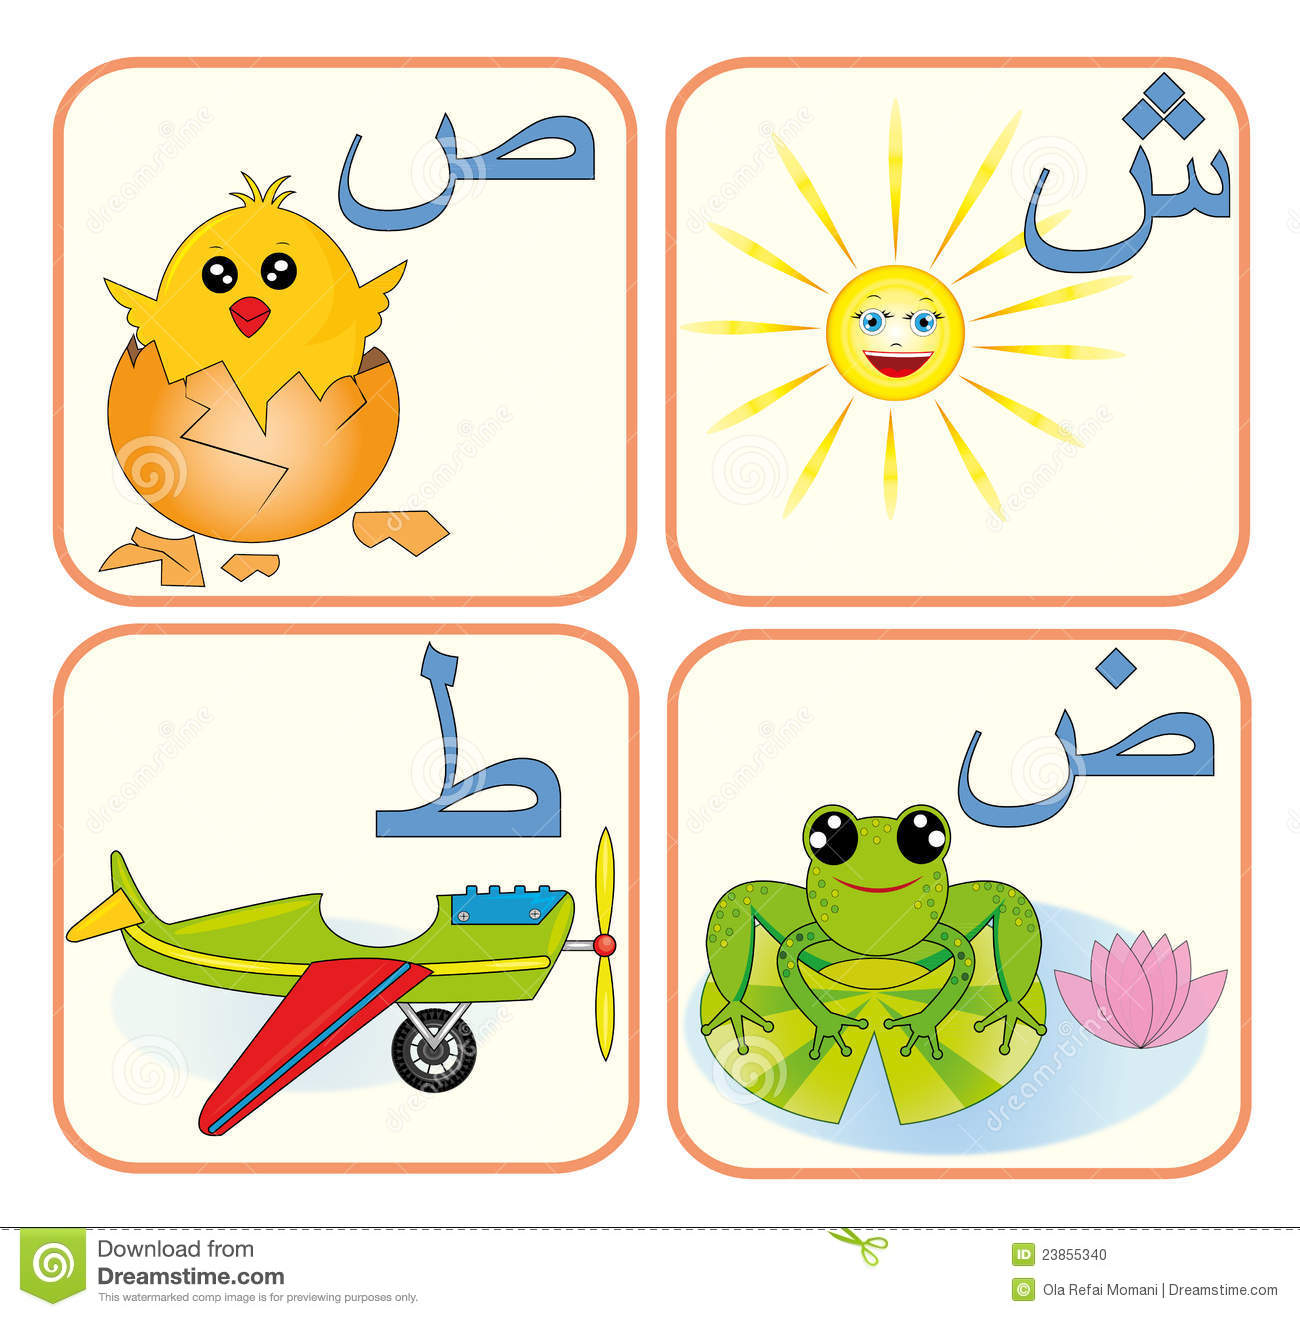 Arabic alphabet for kids with cute animals and fruit for each letter - Alphabet Arabic Cute Kids Letter Baby Muslims Animal